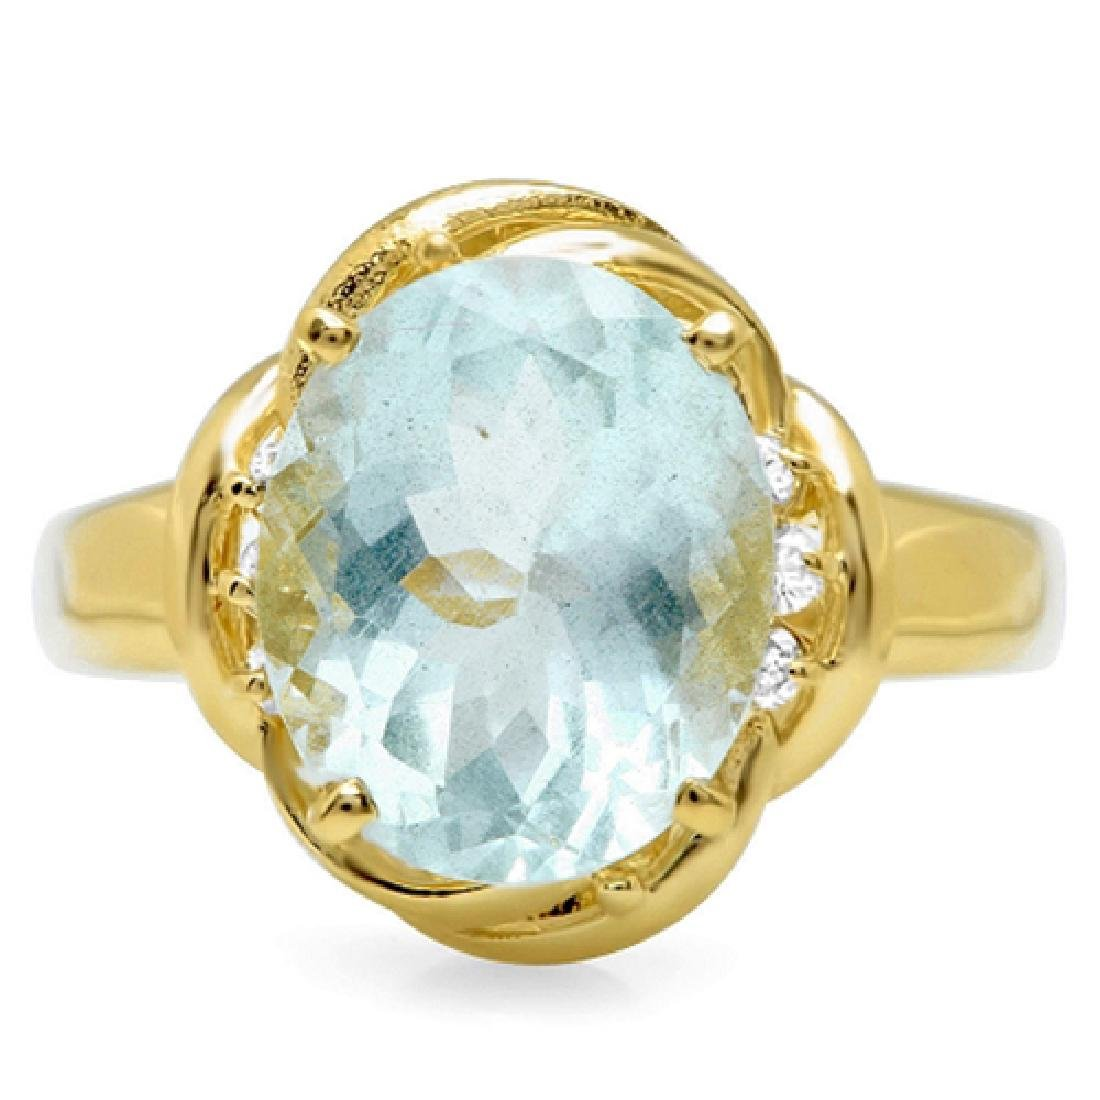 4.38 Carat Natural Aquamarine 18K Solid Yellow Gold